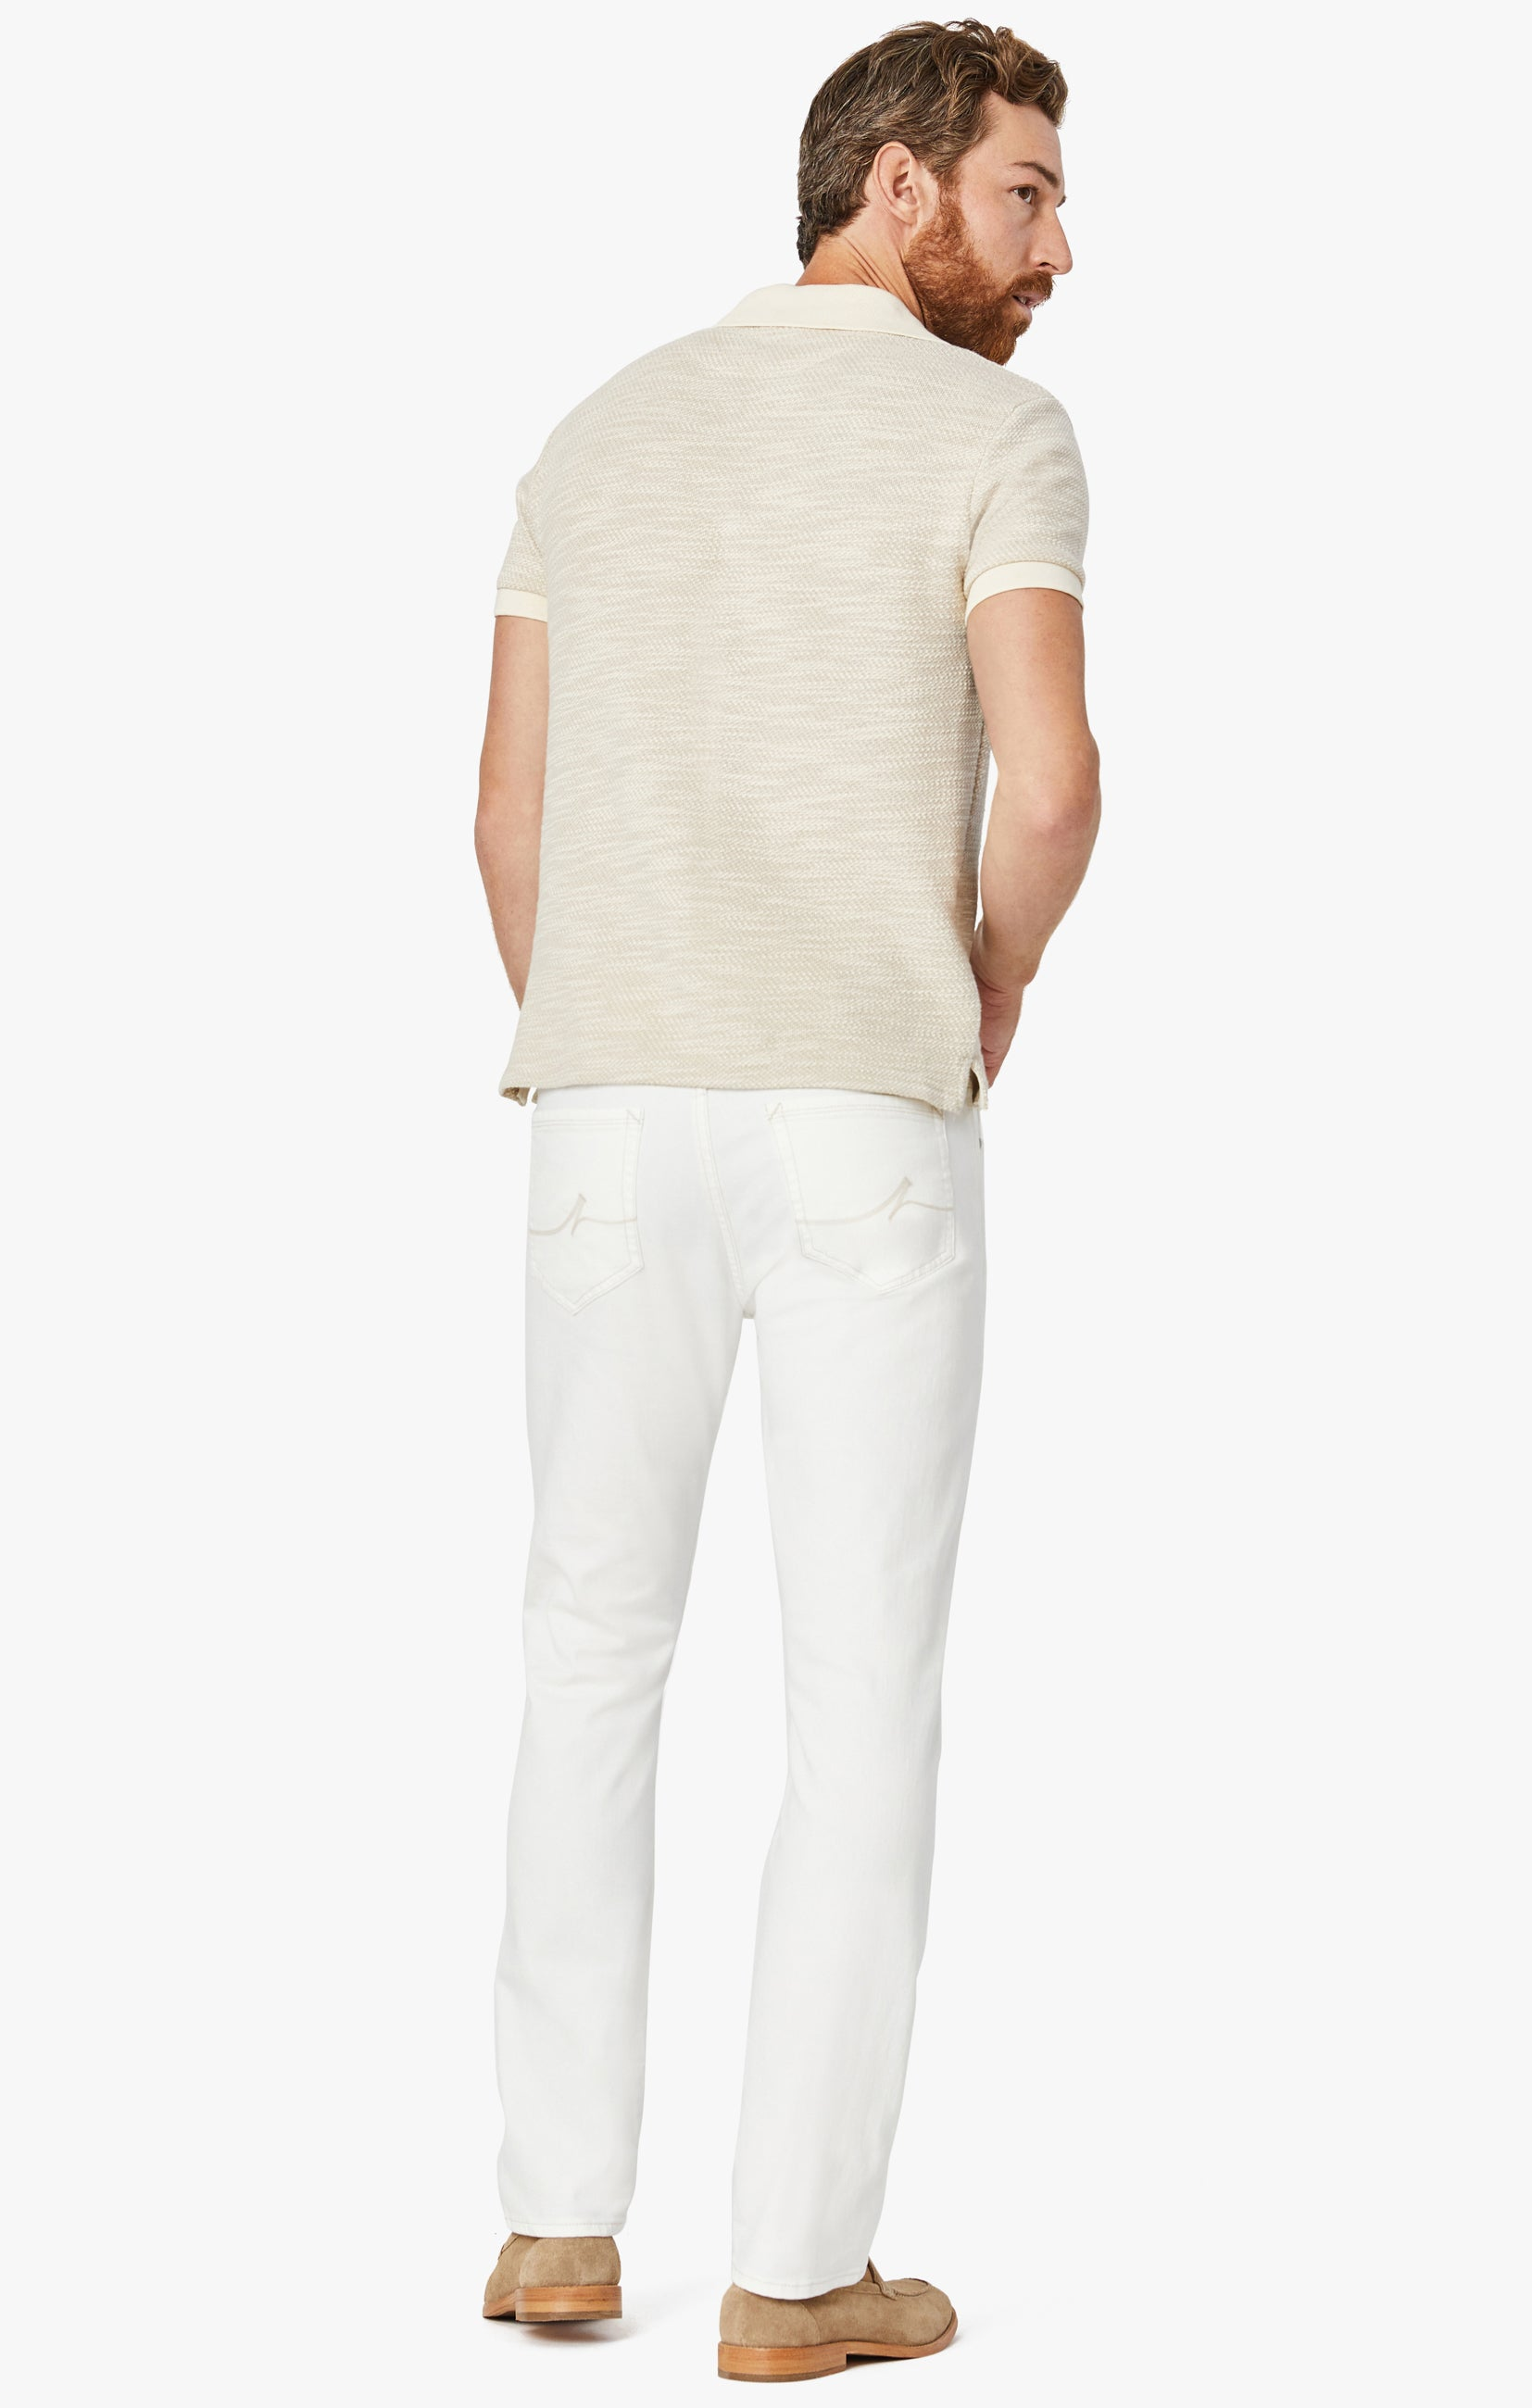 Courage Straight Leg Jeans in White Denim Image 6